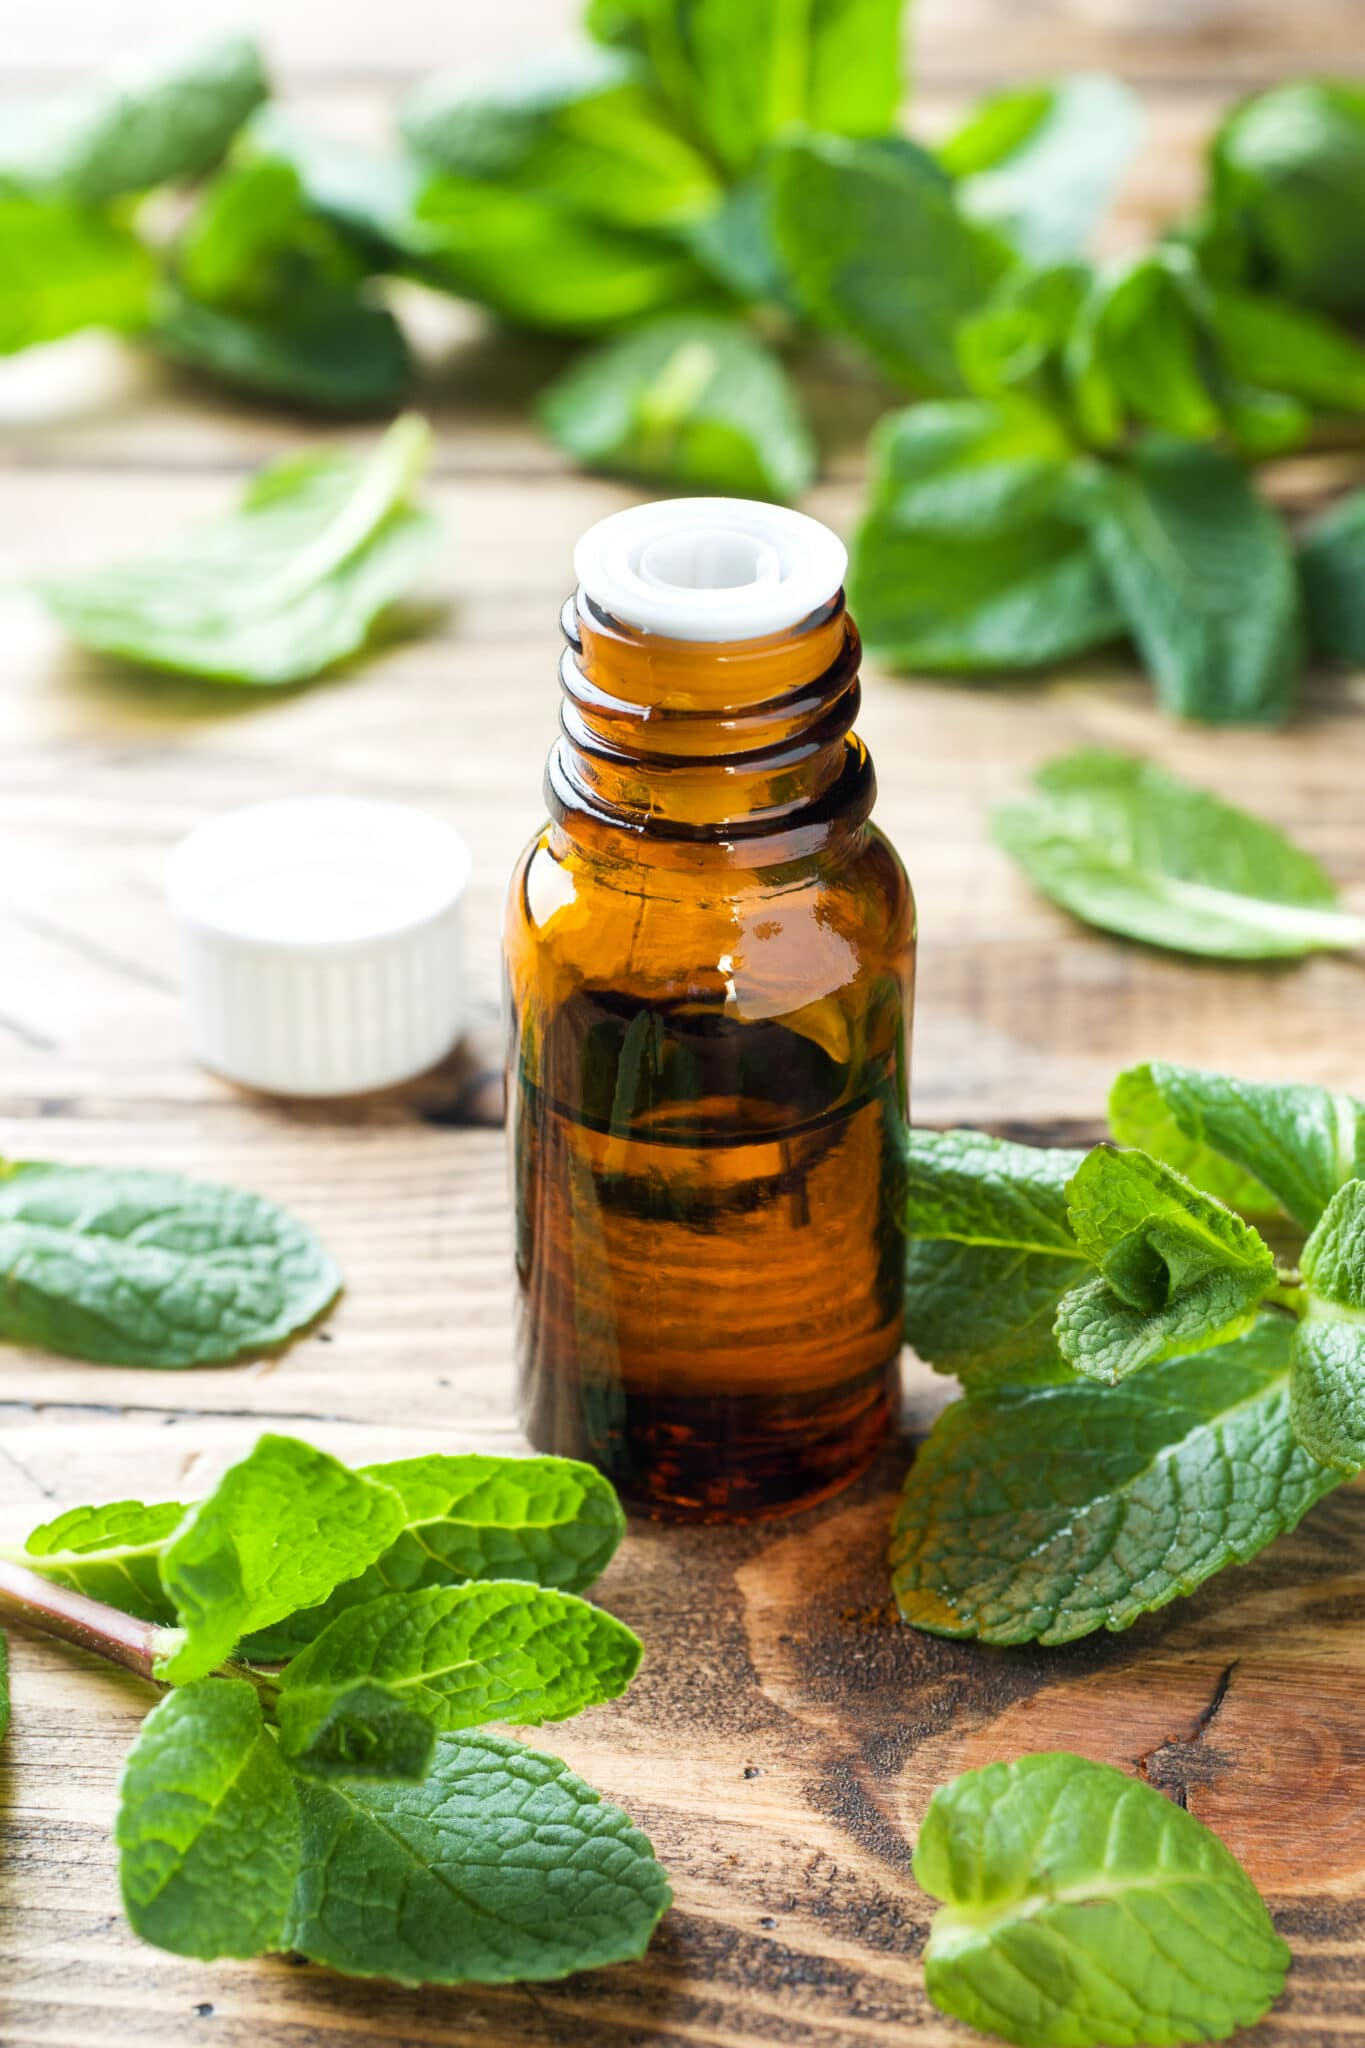 A small brown bottle filled with mint oil surrounded by sprigs of fresh mint all resting on a rustic wooden table top.